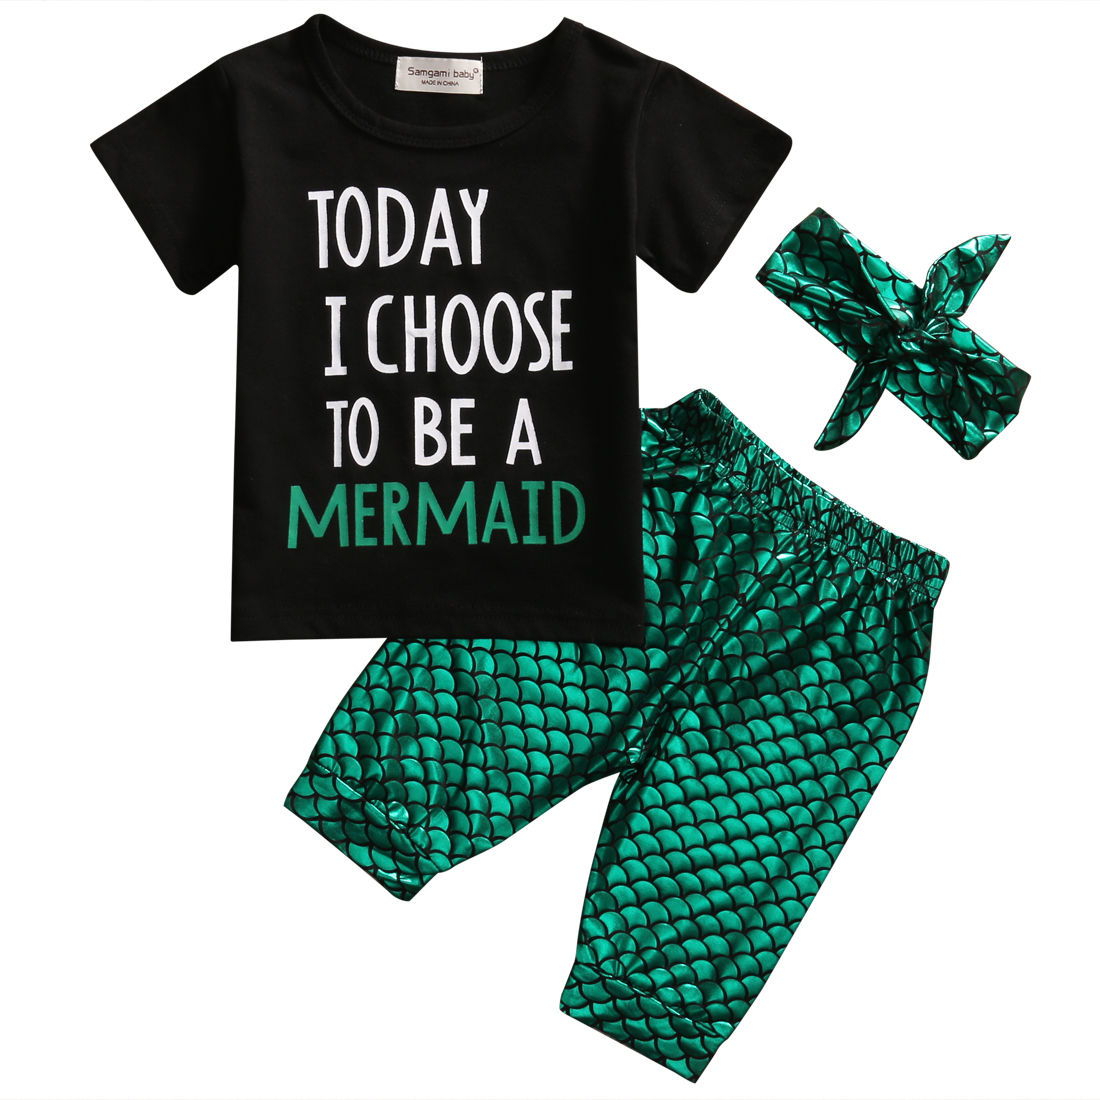 Mermaid Toddler Baby Kids Girl Clothes Set Short Sleeve Tops T-Shirts Shorts Headband 3pcs Outfits Set Clothing Girl 1-6Y princess toddler kids baby girl clothes sets sequins tops vest tutu skirts cute ball headband 3pcs outfits set girls clothing